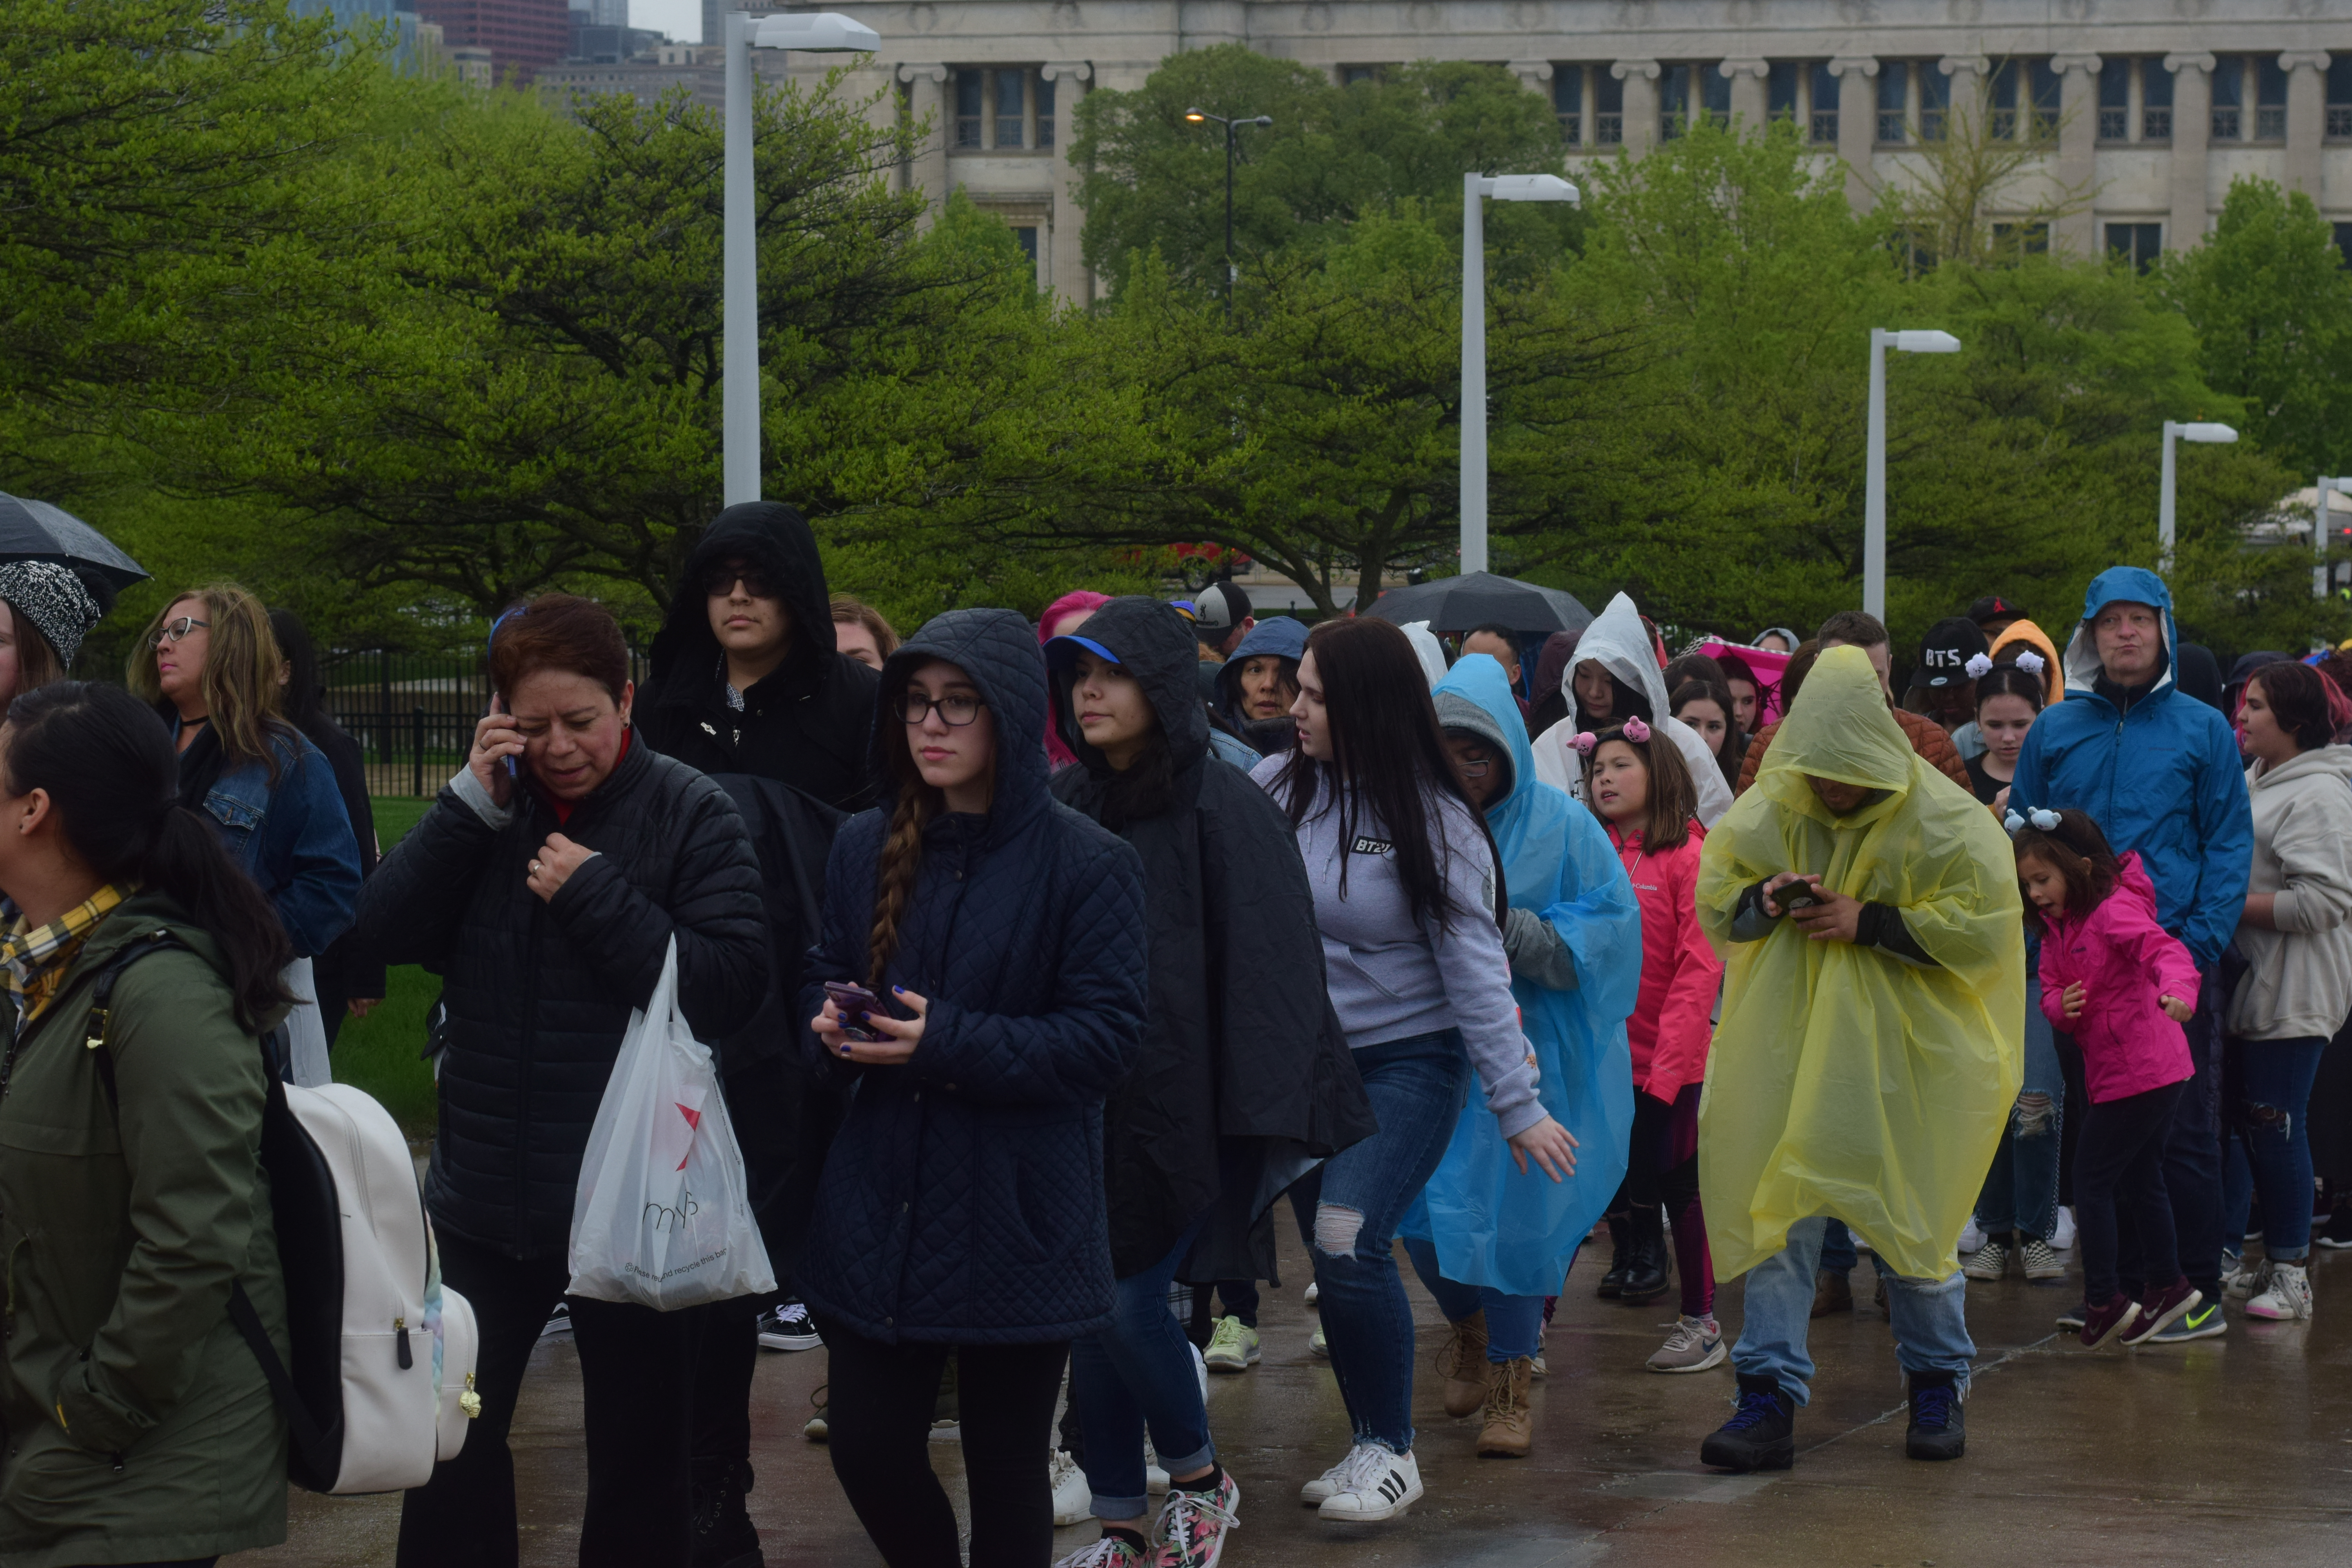 BTS turns up the heat on frigid spring night at Chicago's